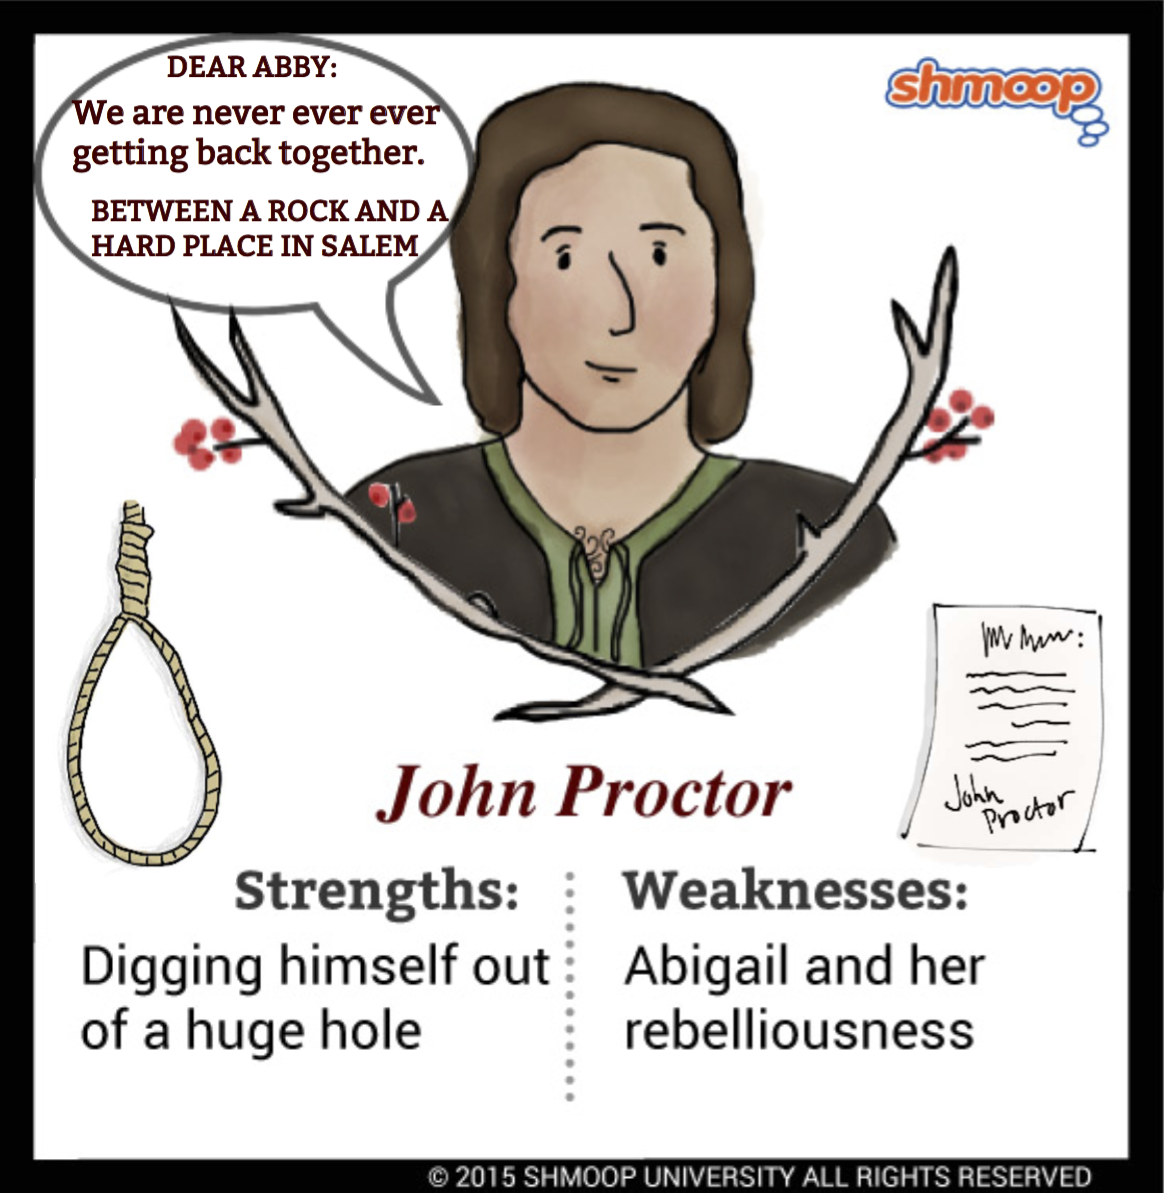 an overview of the character john proctor in the crucible a play by arthur miller Meet john proctor, the protagonist of arthur miller's historical drama 'the crucible' this lesson will briefly introduce his character traits.